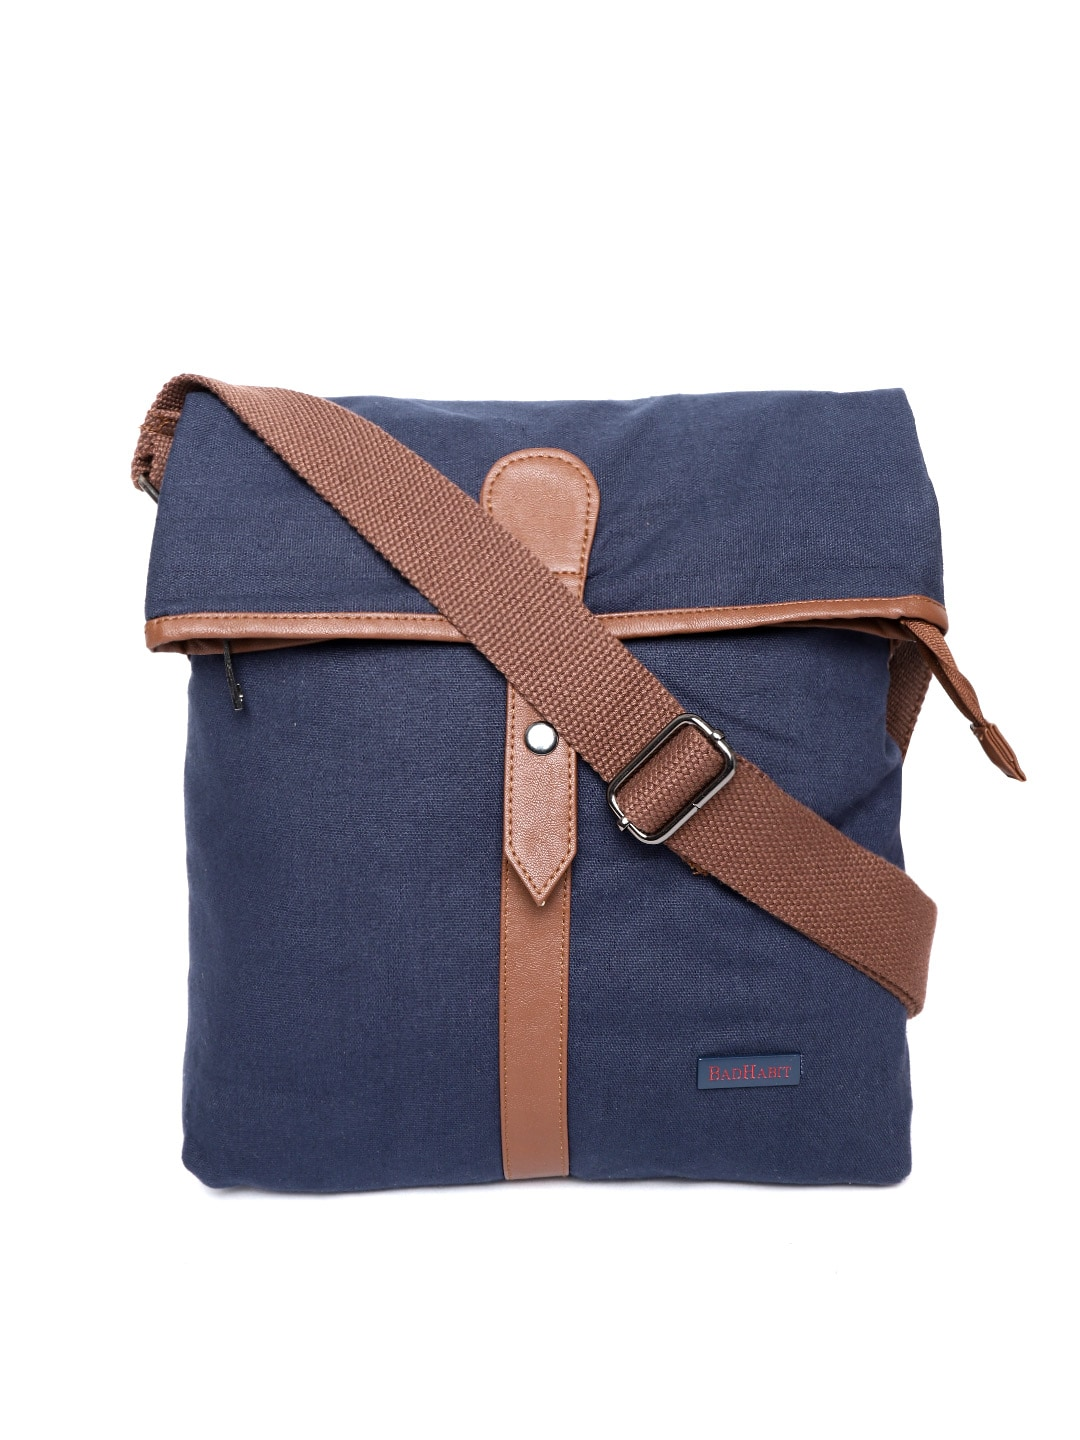 f27e5ddc03bd Canvas Messenger Bags - Buy Canvas Messenger Bags online in India